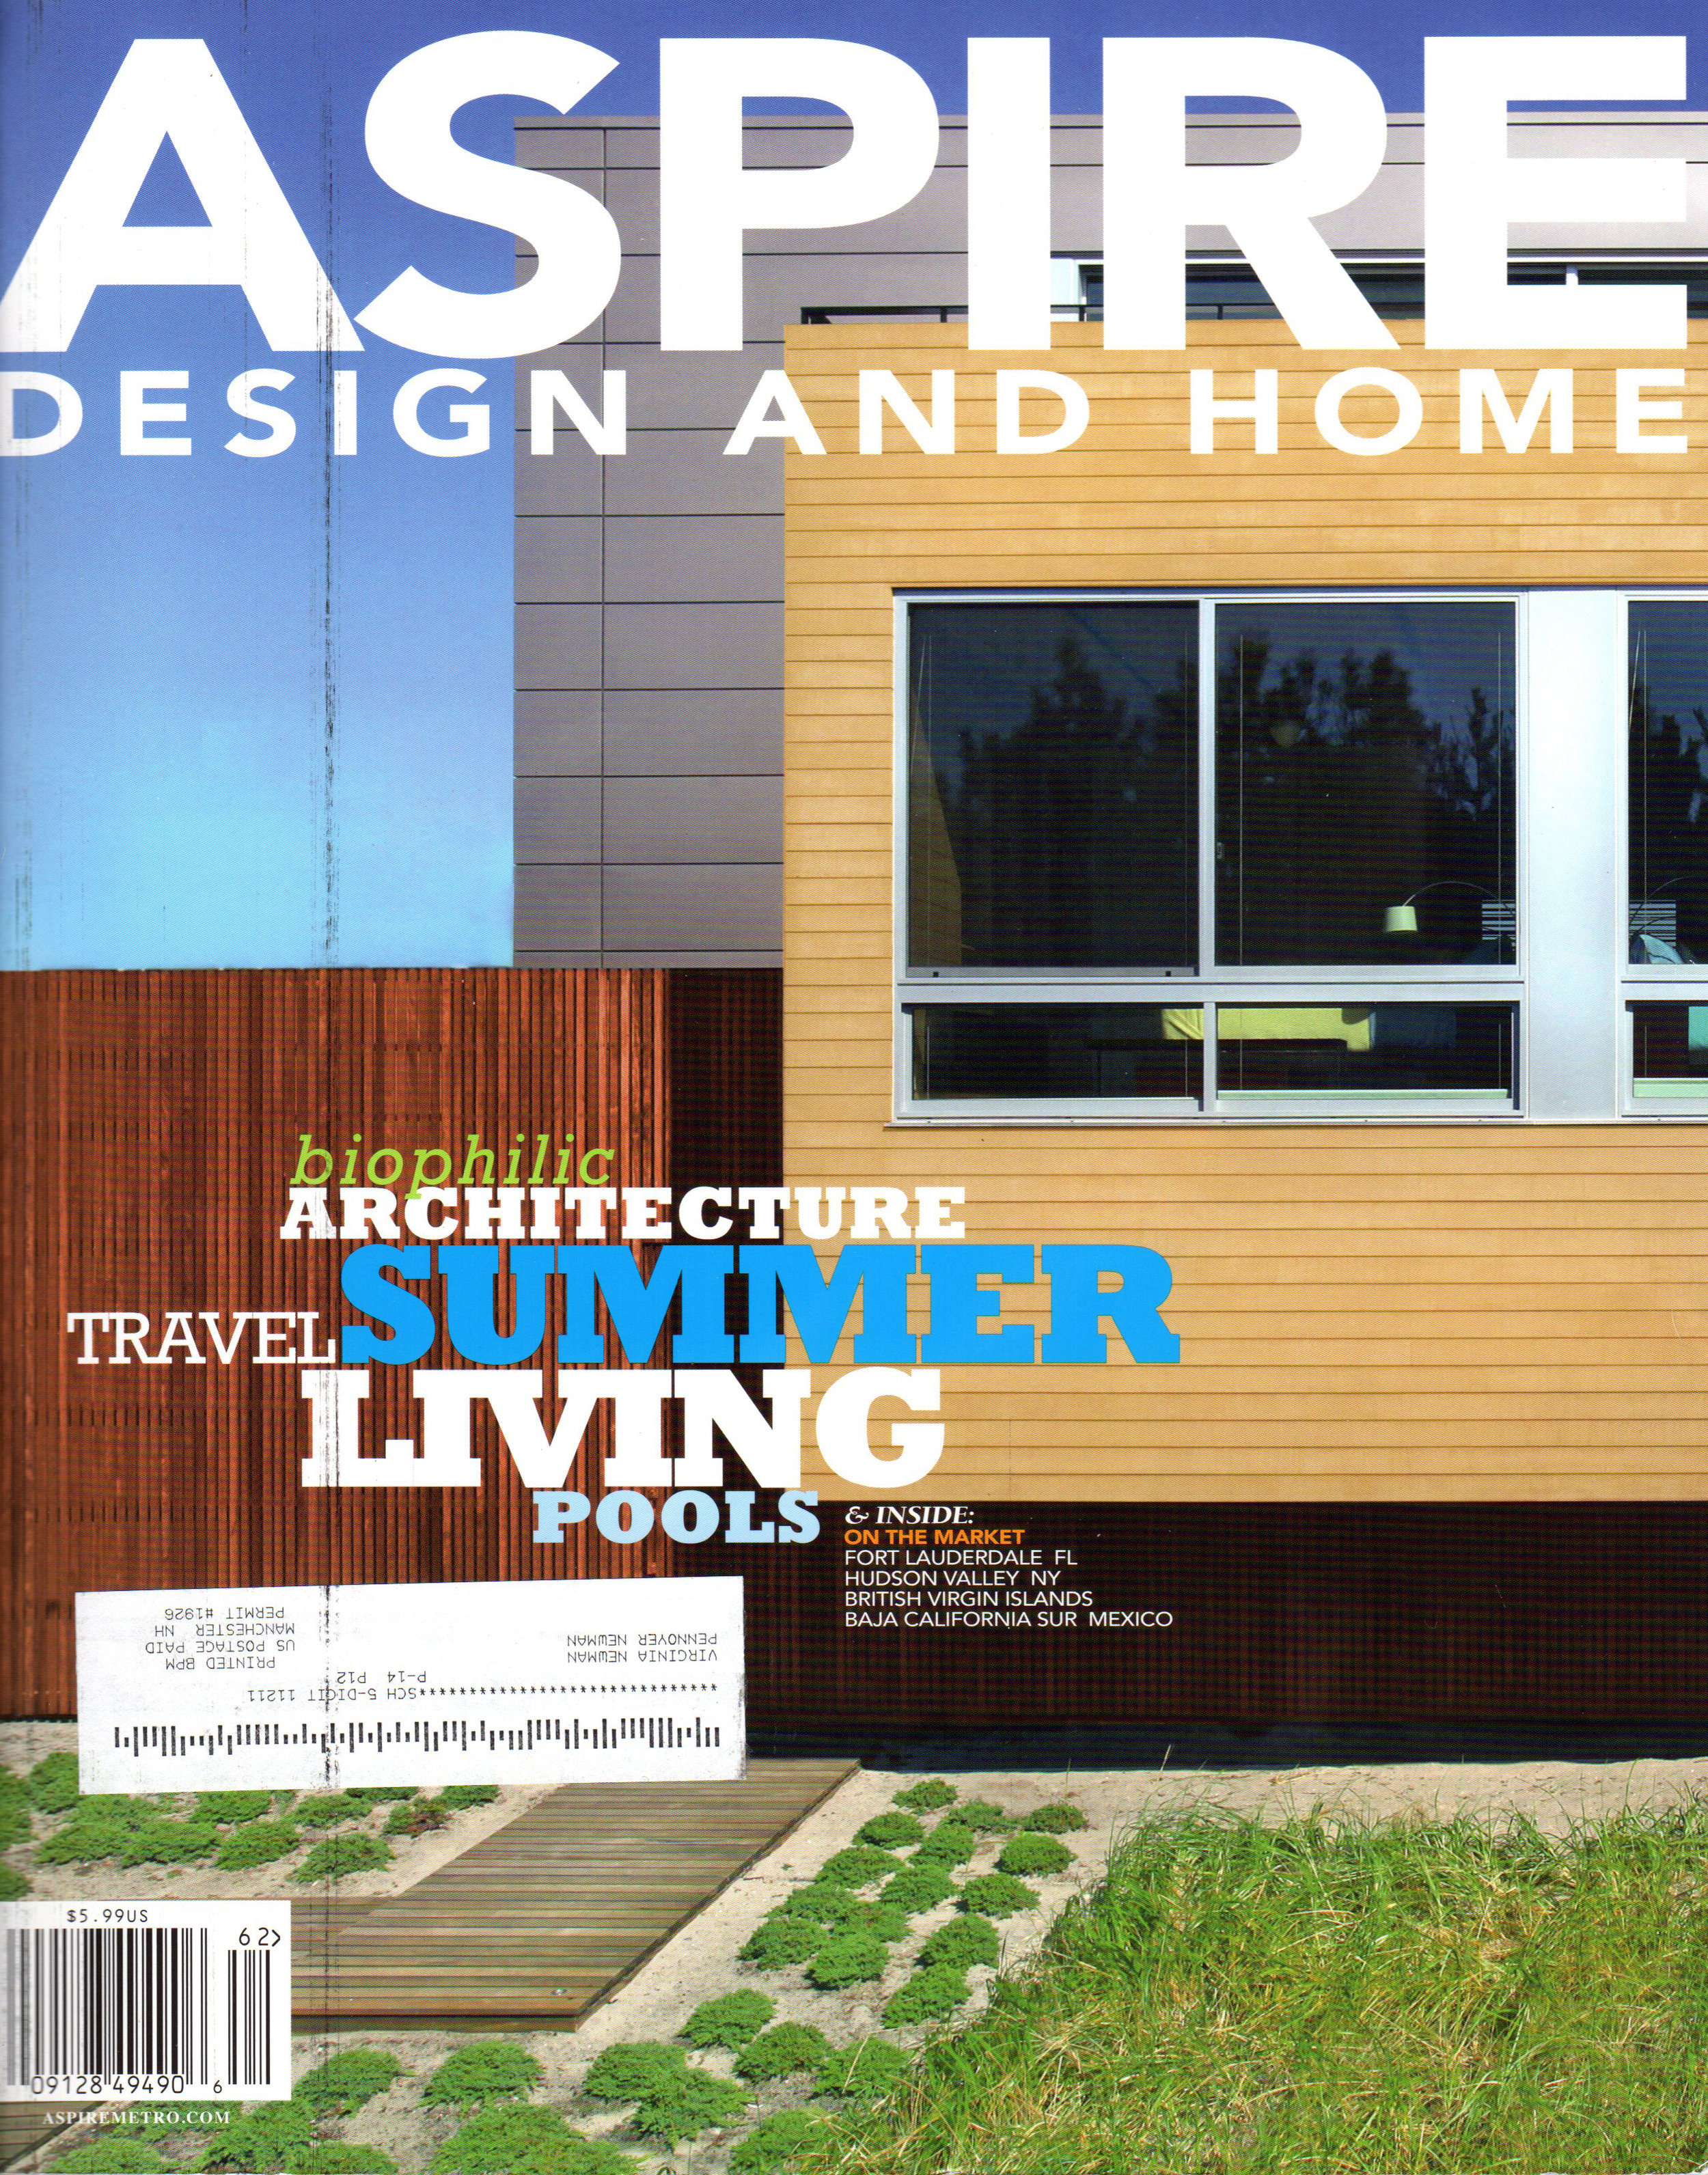 Pennoyer Newman in Aspire Design and Home Magazine